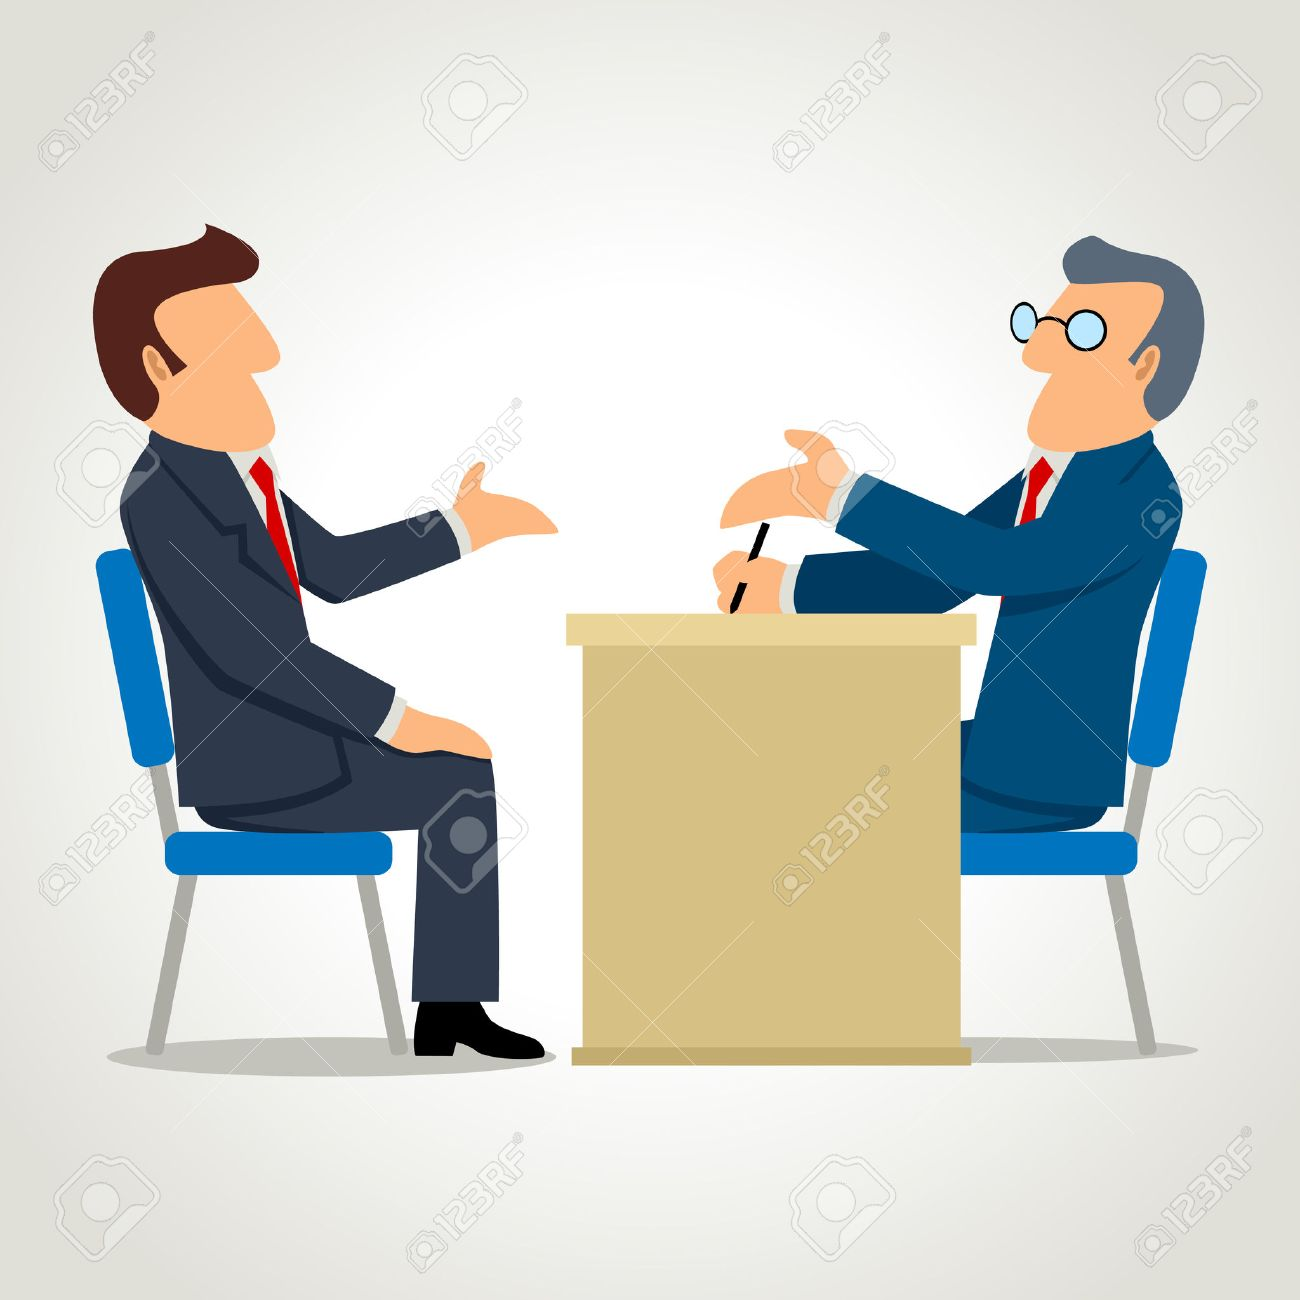 3 485 employee skills stock vector illustration and royalty employee skills simple cartoon of a man being interviewed